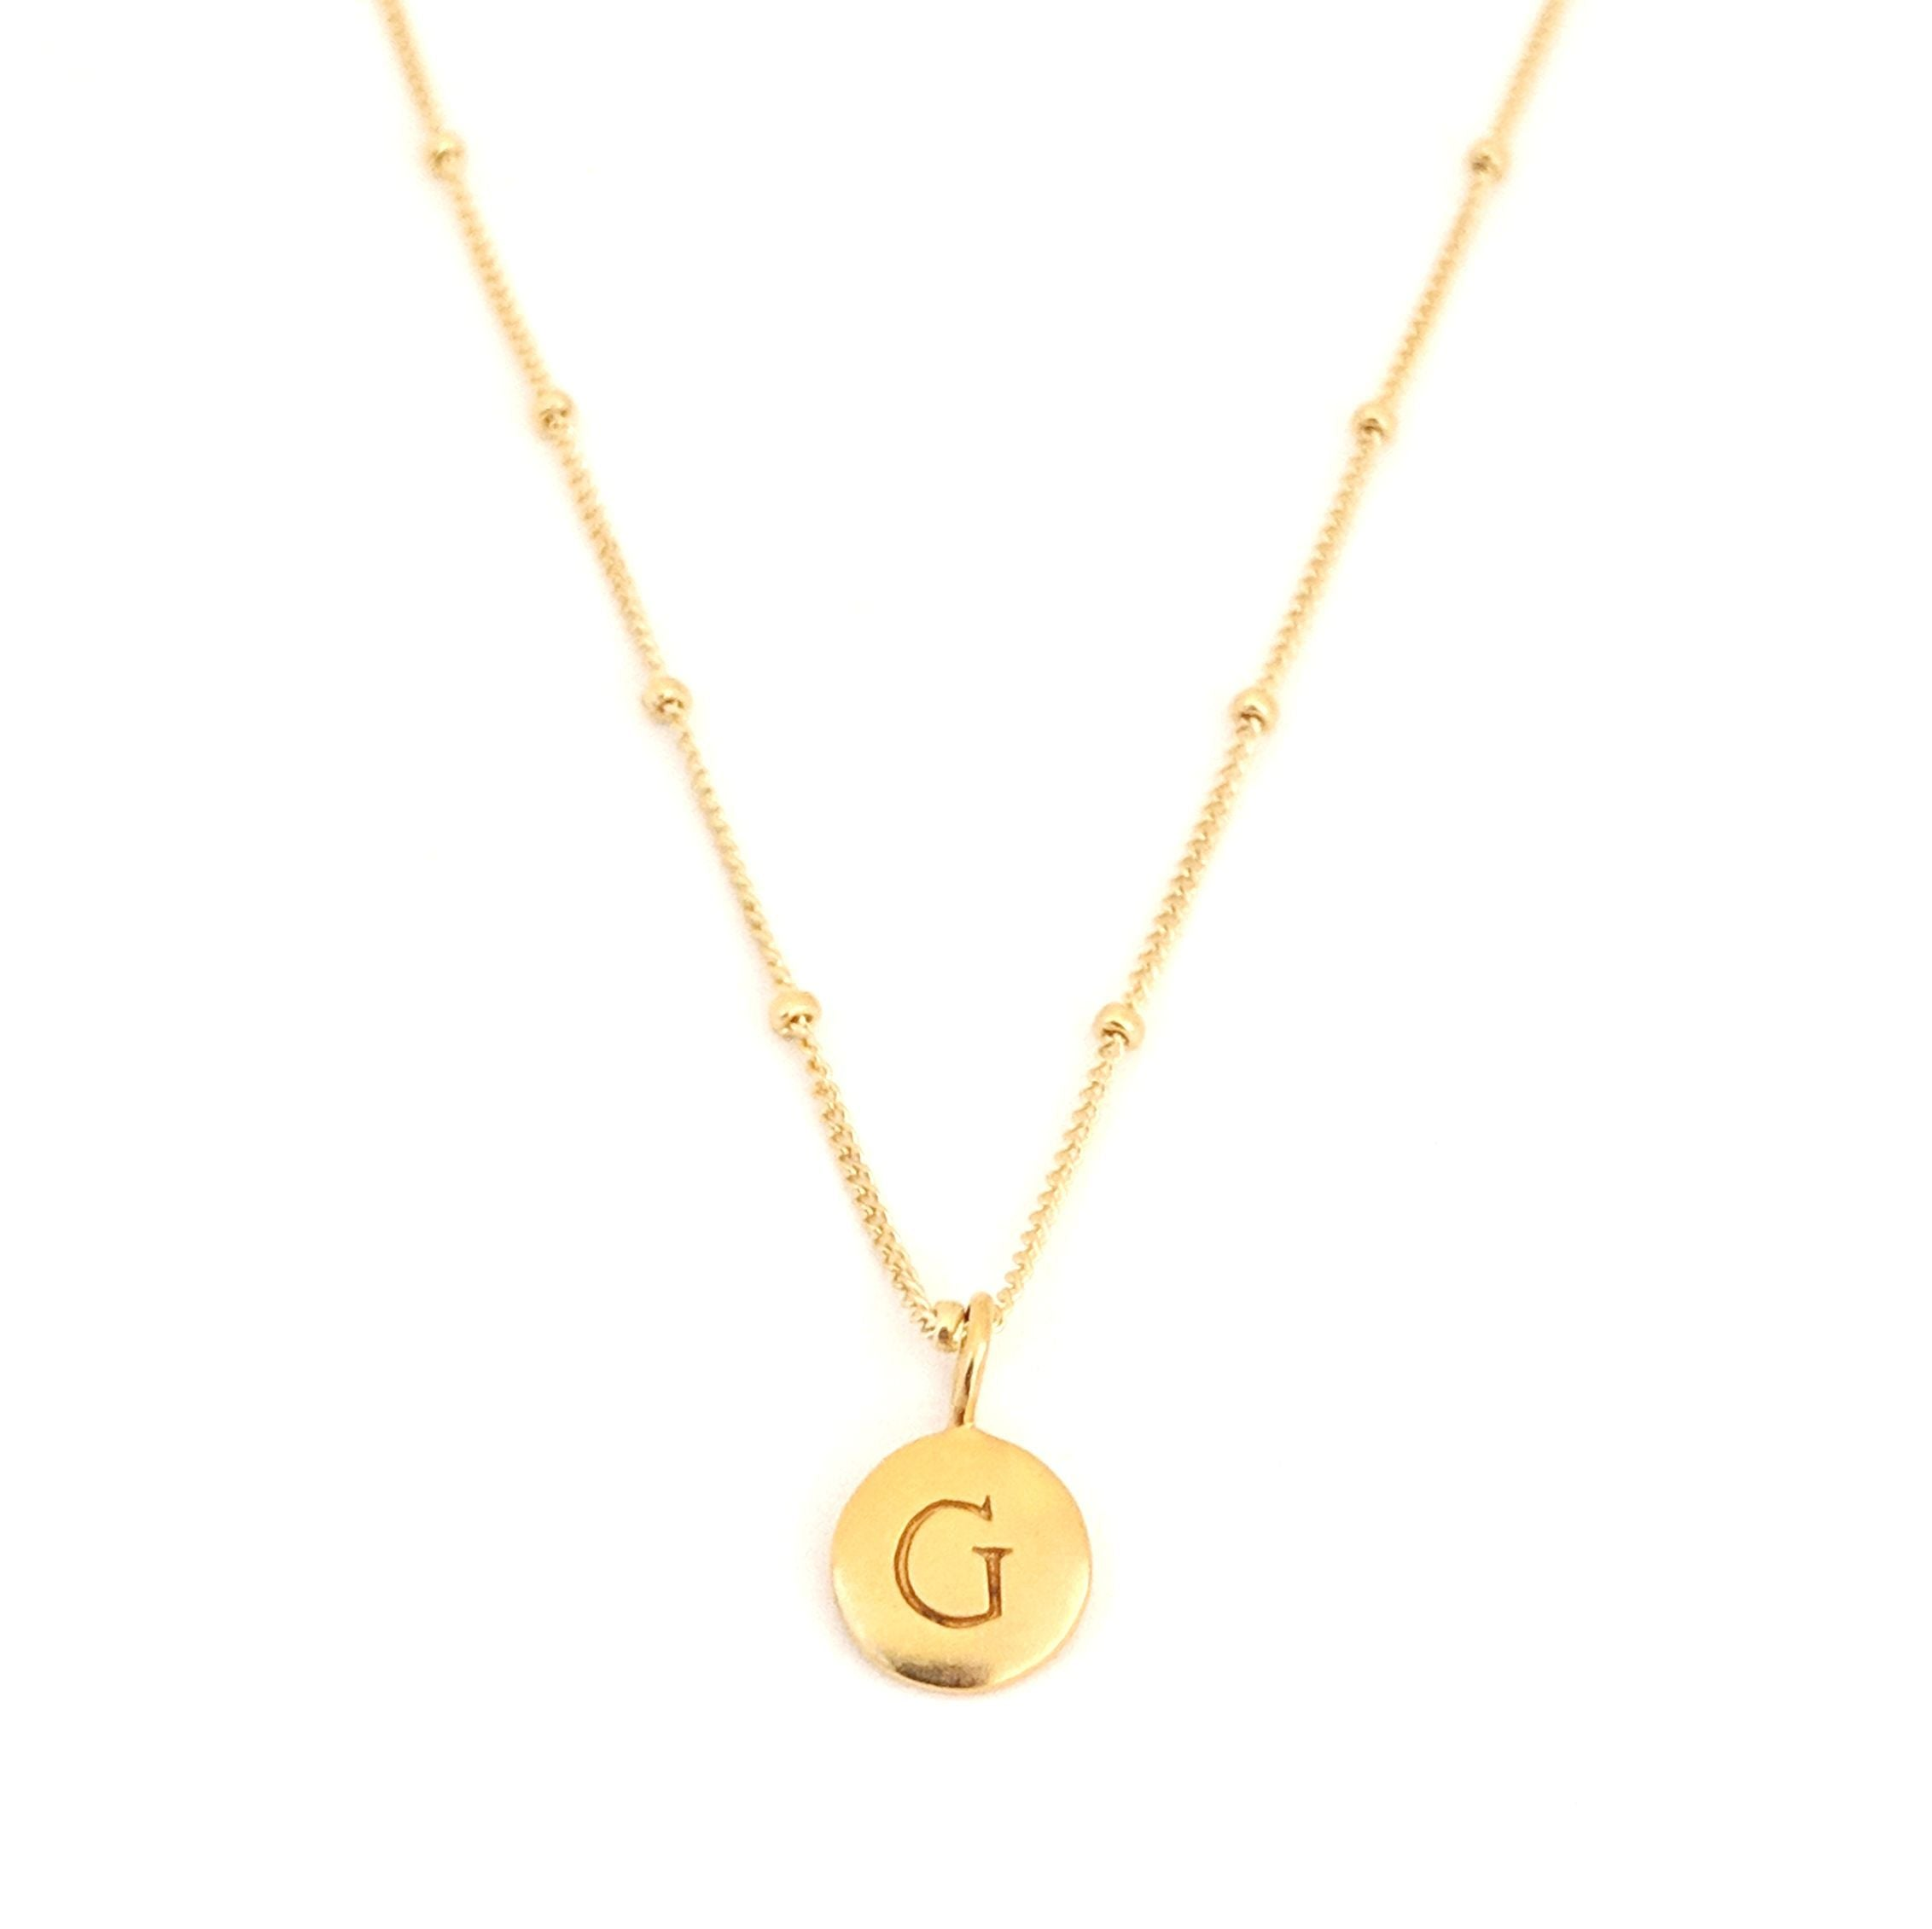 """G"" Mayfair Necklace"